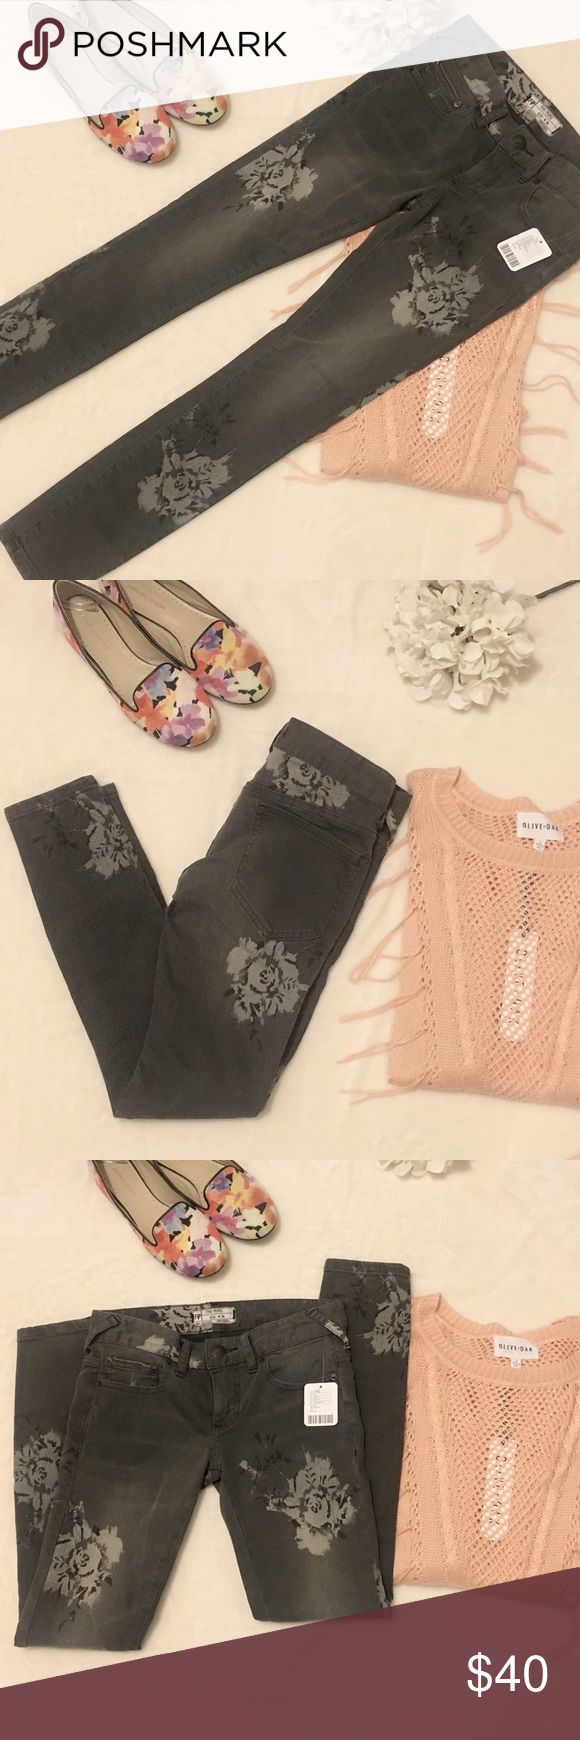 Free people skinny jeans Free people faded black with gray floral print skinny jeans. Size 24 Free People Jeans Skinny